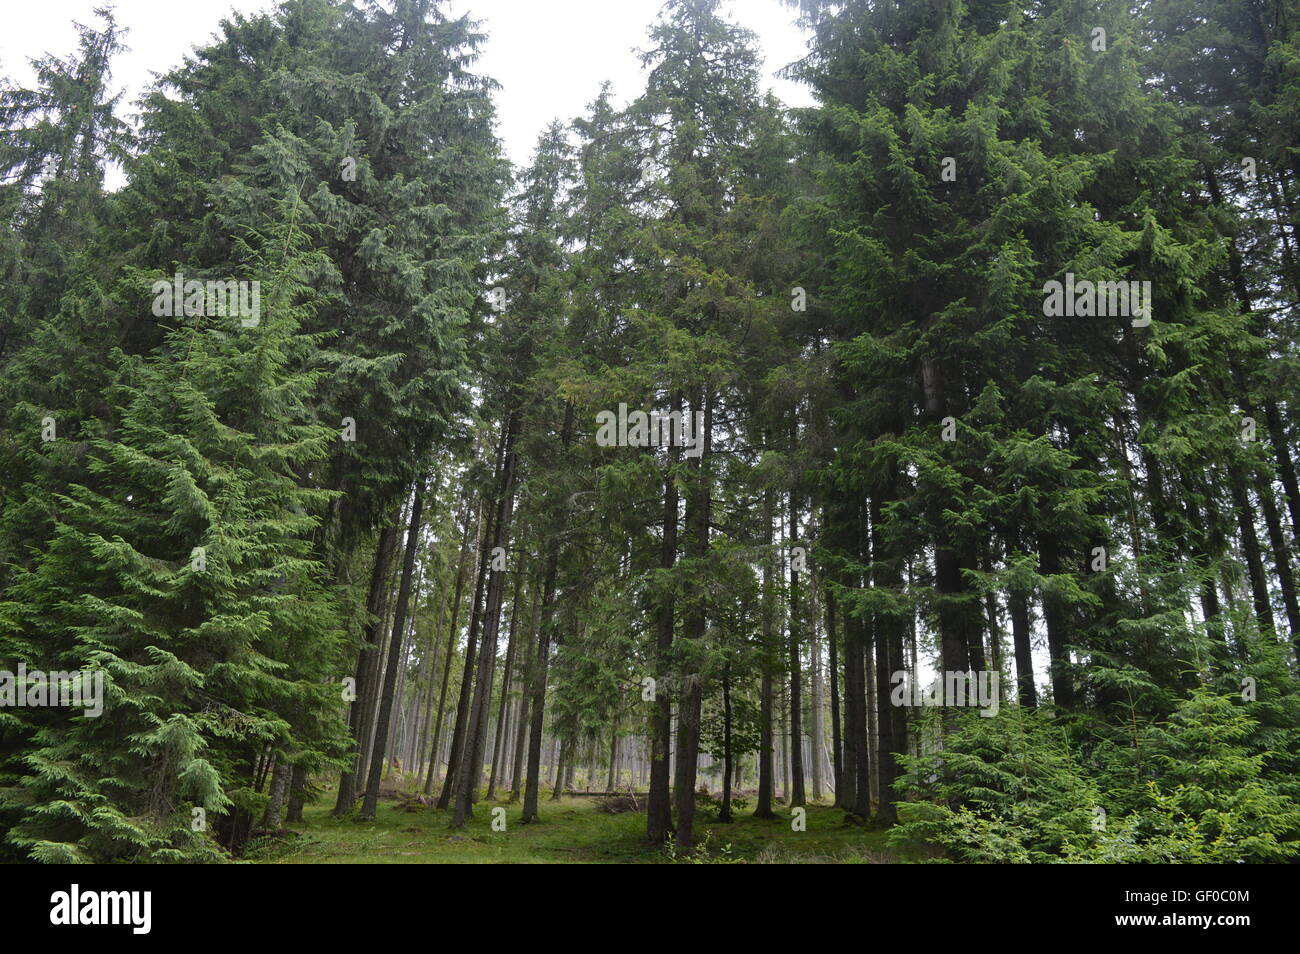 Coniferous forest in the Apuseni Mountains - Stock Image